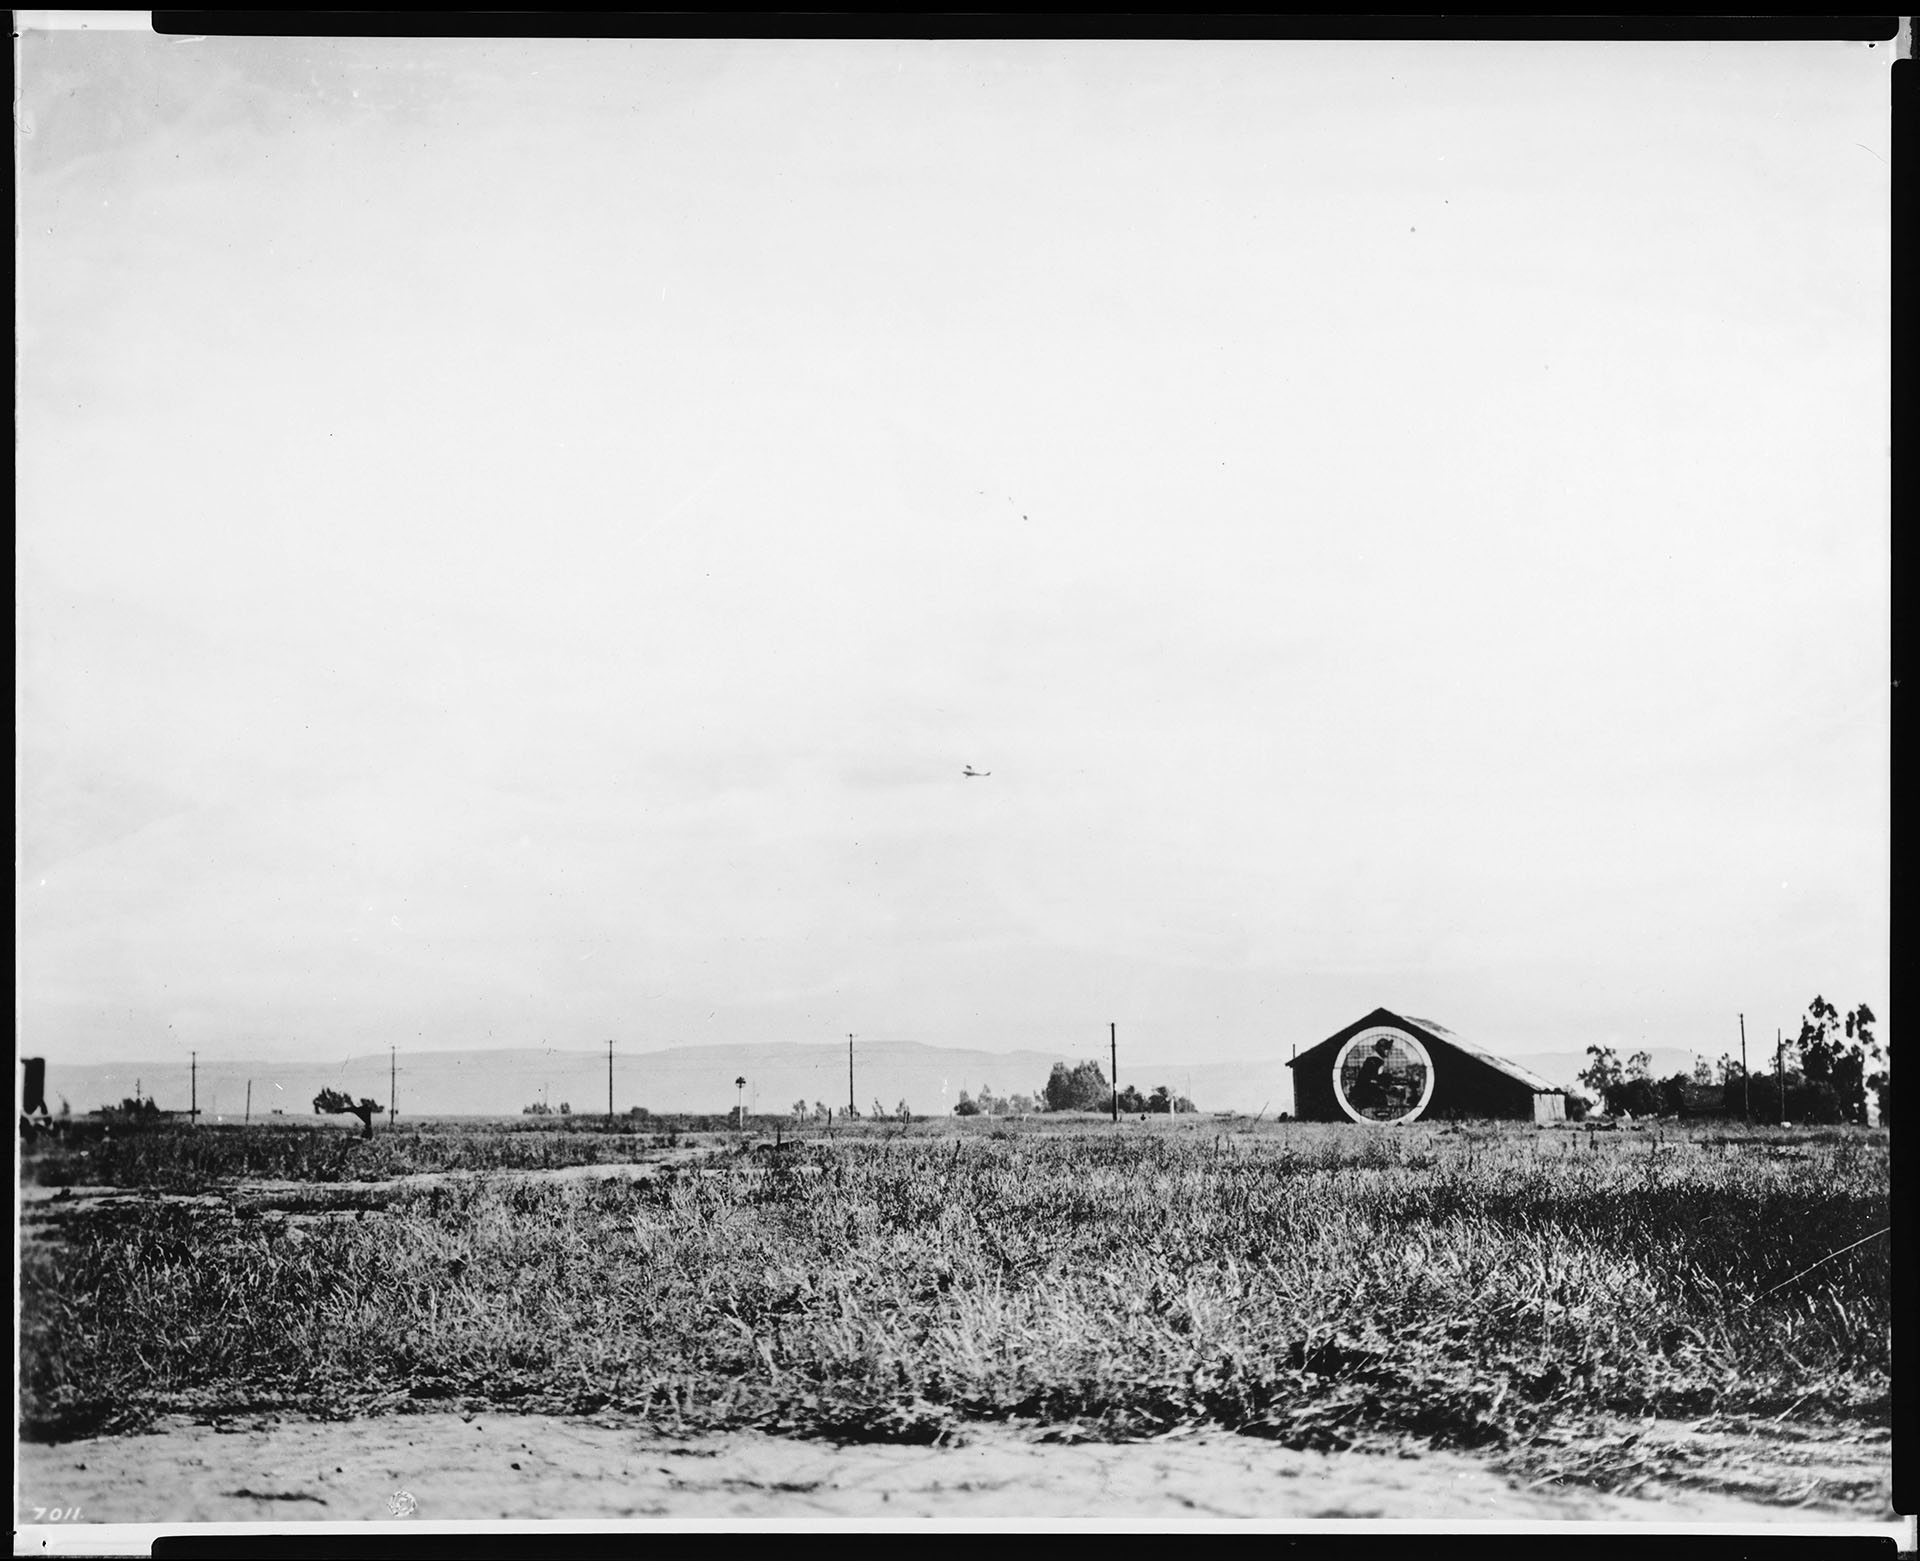 View of Hollywood south of Wilshire Boulevard and Fairfax Avenue looking west, (possibly at Rogers Airport), ca.1920